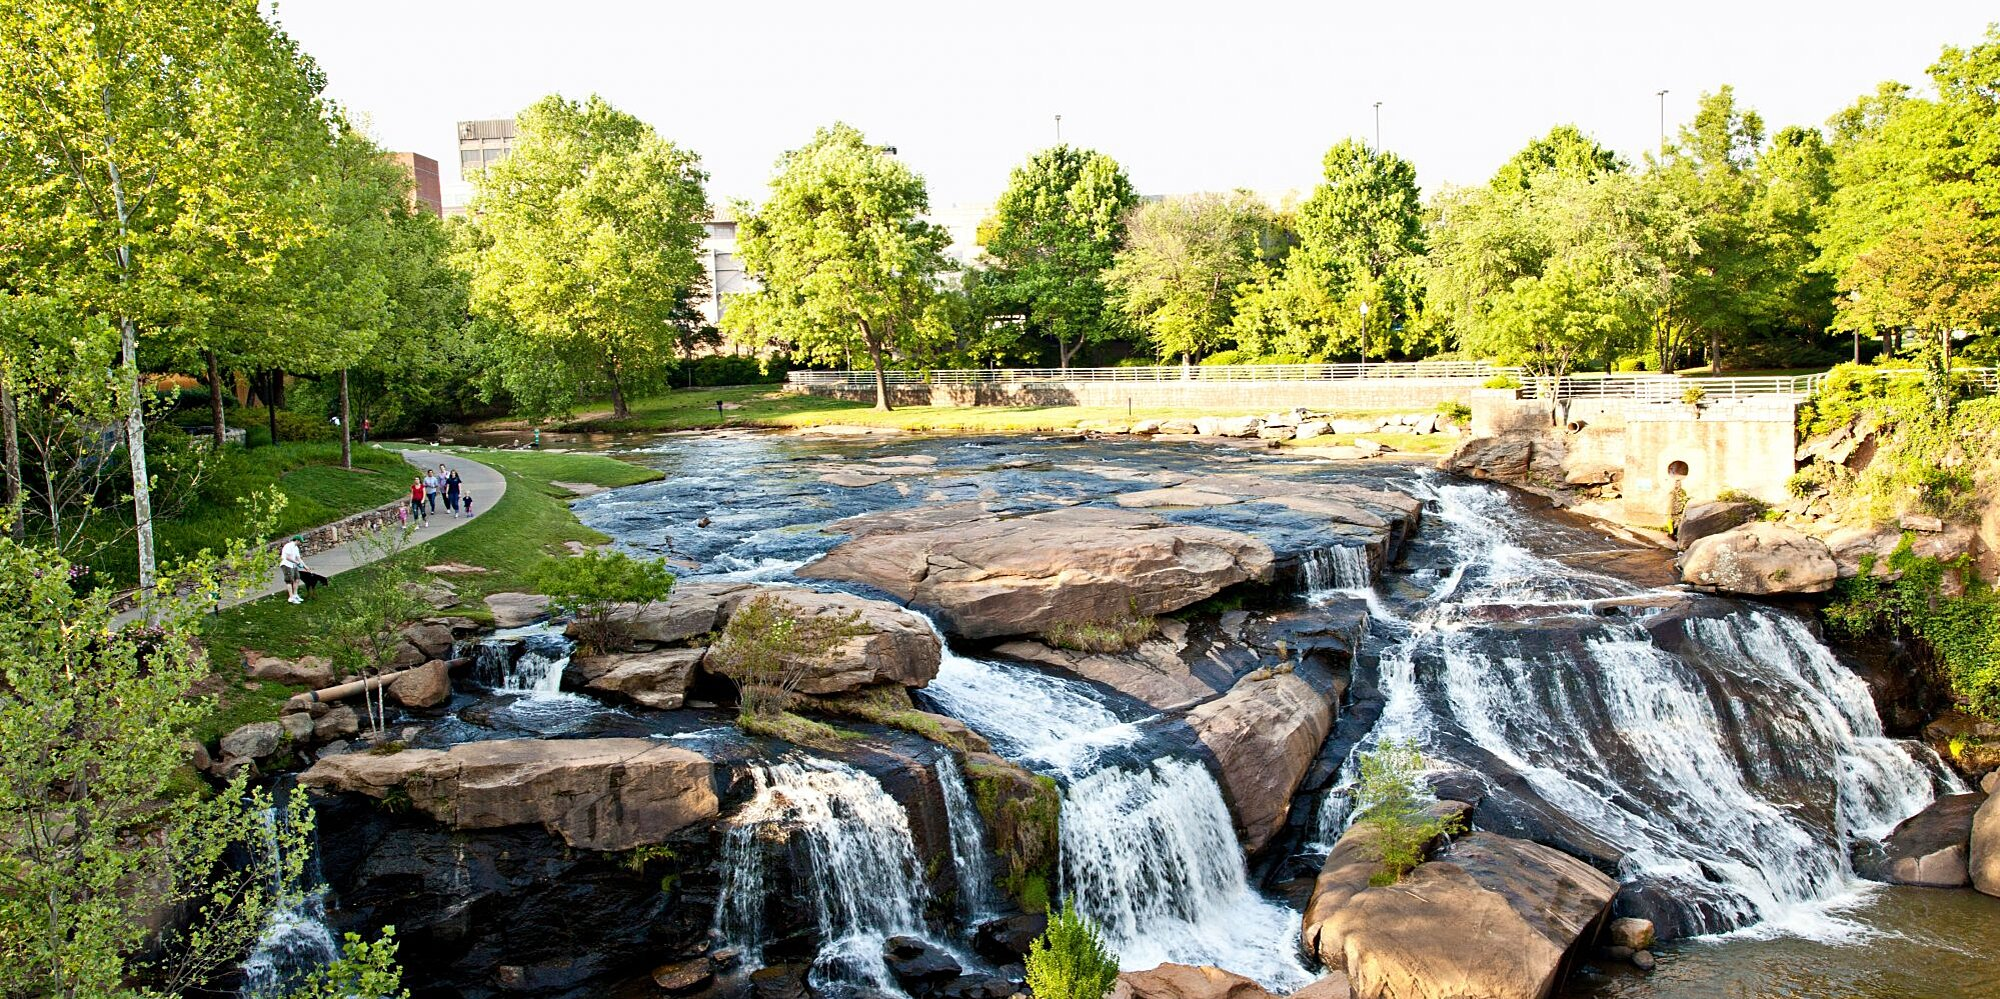 Why Greenville Should Be on Your Travel Bucket List